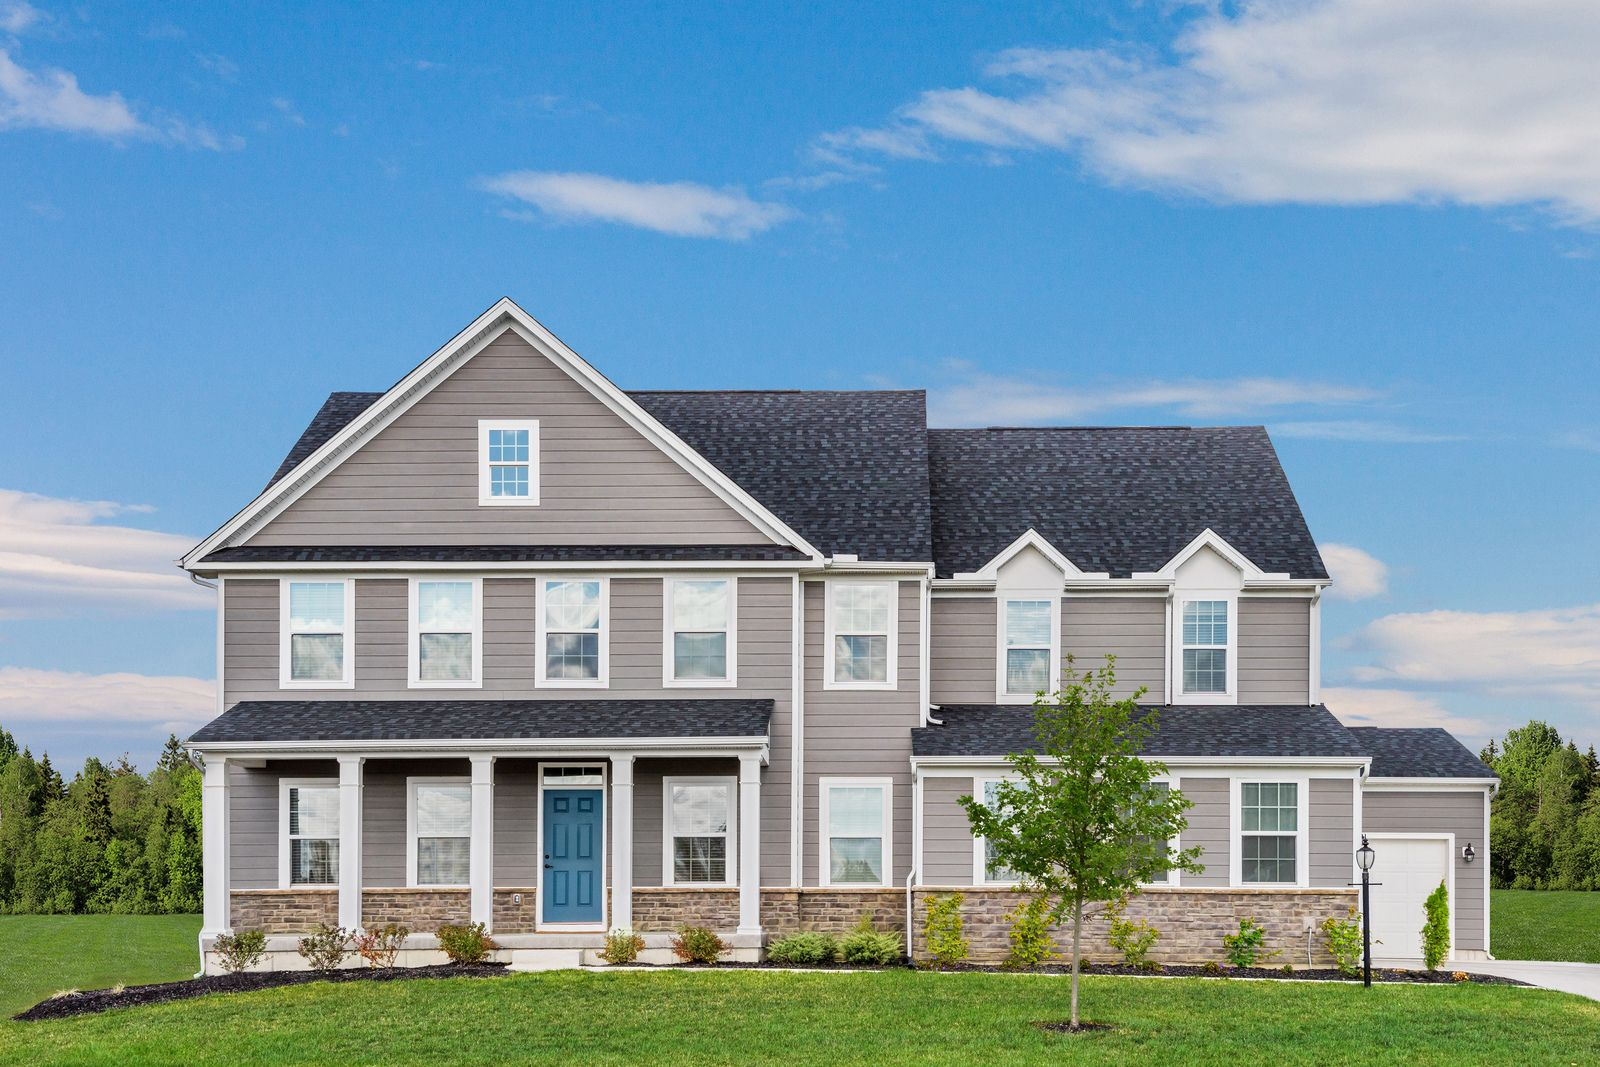 Welcome home to Windsor Estates:Enjoy ½ acre homesites with finished basements in Lakota schools. Only minutes from shopping, dining, & I-75. From the upper $300s.Click here to schedule your first visit to Windsor Estates!